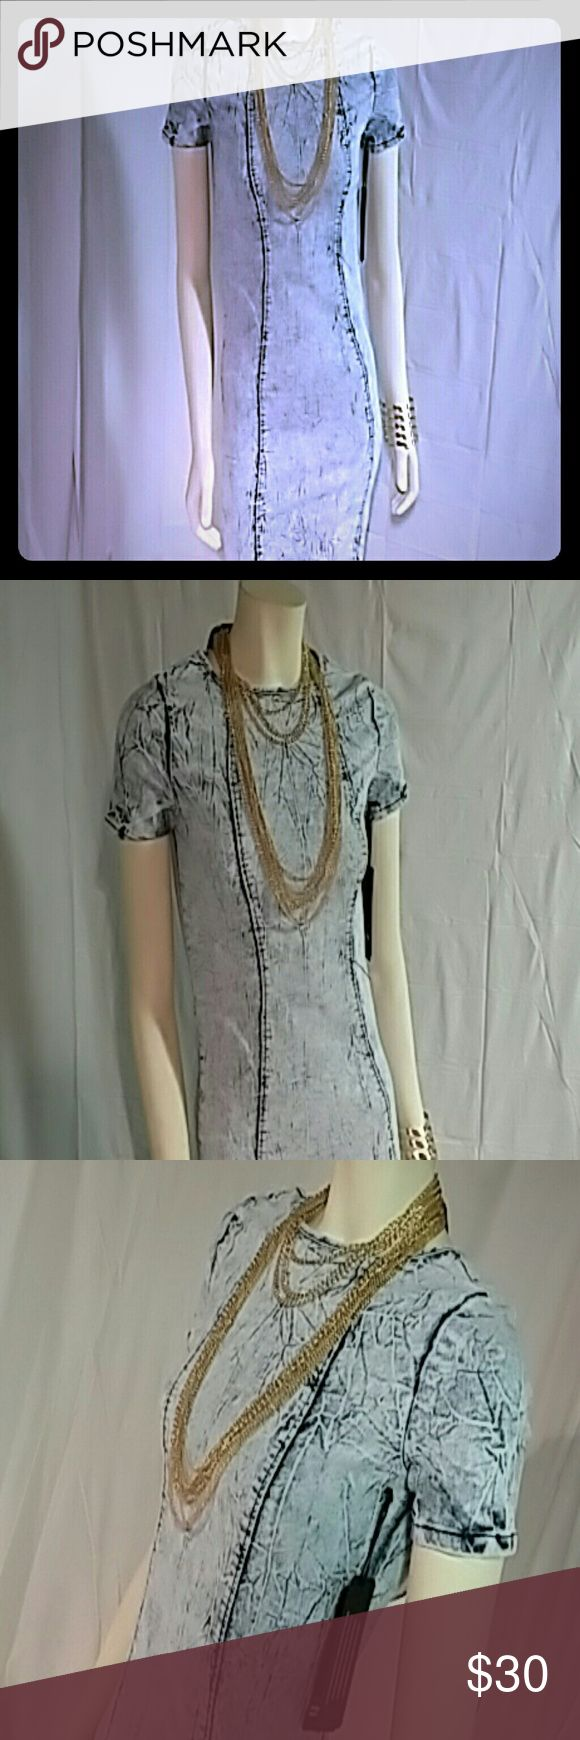 Denim midi bodycon dress Denim bodycon dress light acid wash is 95% cotton 5% spandex great denim dress for the spring weather ahead make an offer ladies or bundle two items and get 20% off Dresses